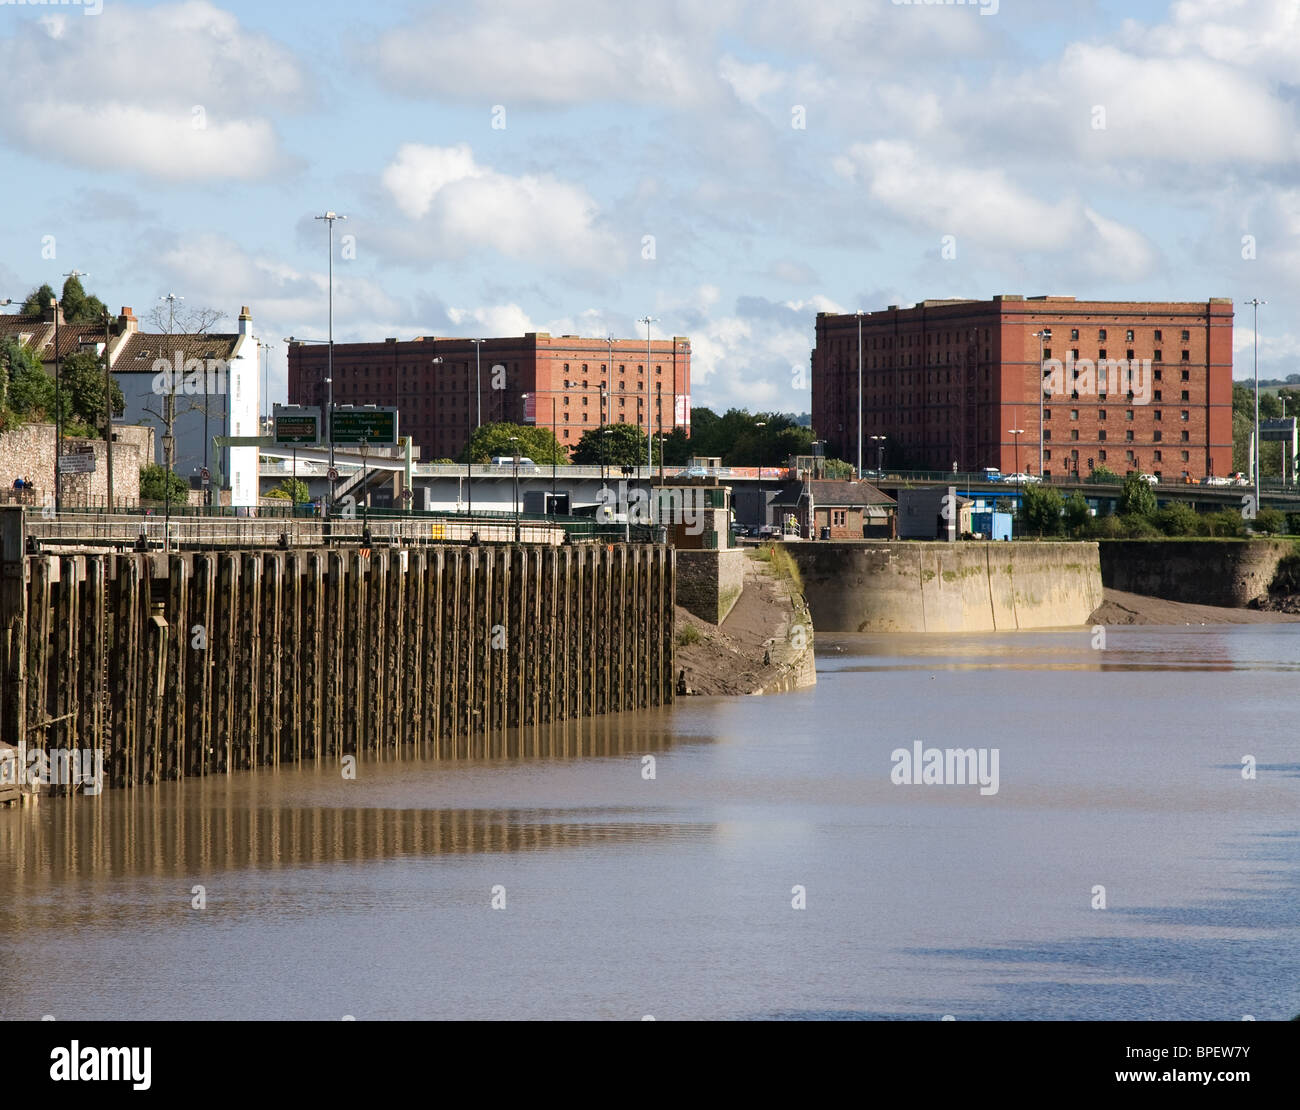 Hotwells Bristol UK at Cumberland Basin with old bond warehouses entrance to floating harbour and old shipping wharves - Stock Image